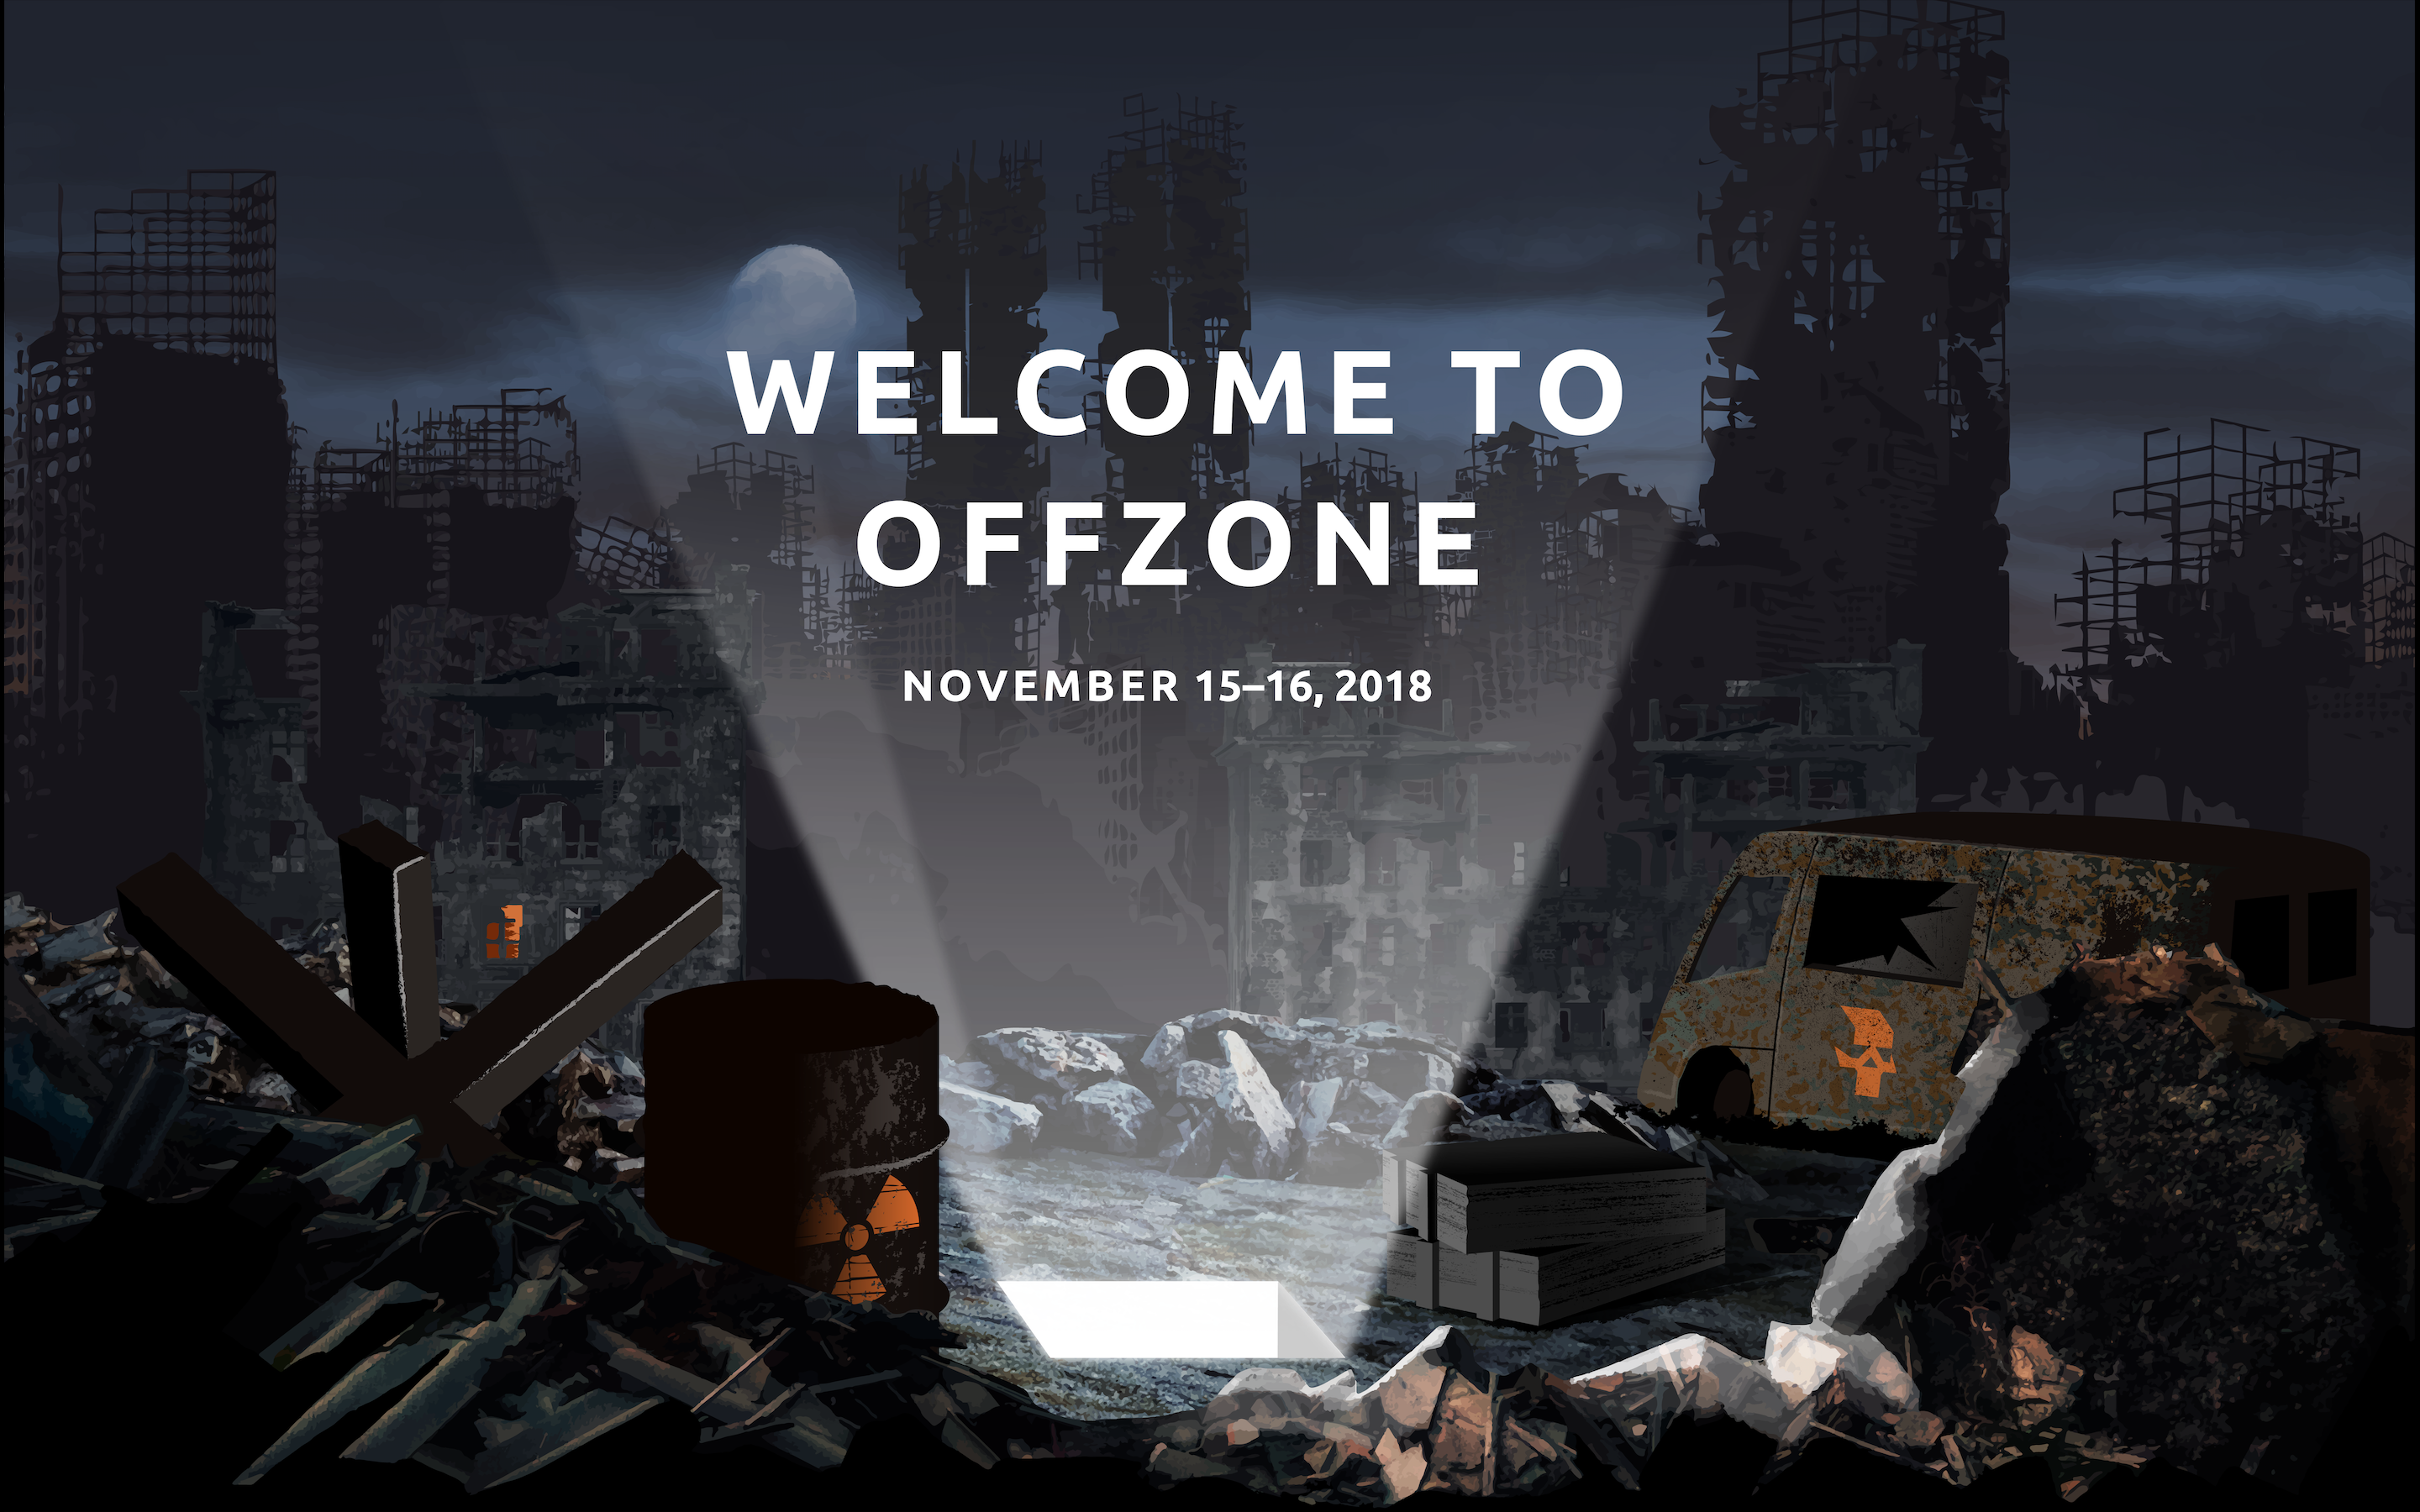 OFFZONE 2018 welcomes recruits